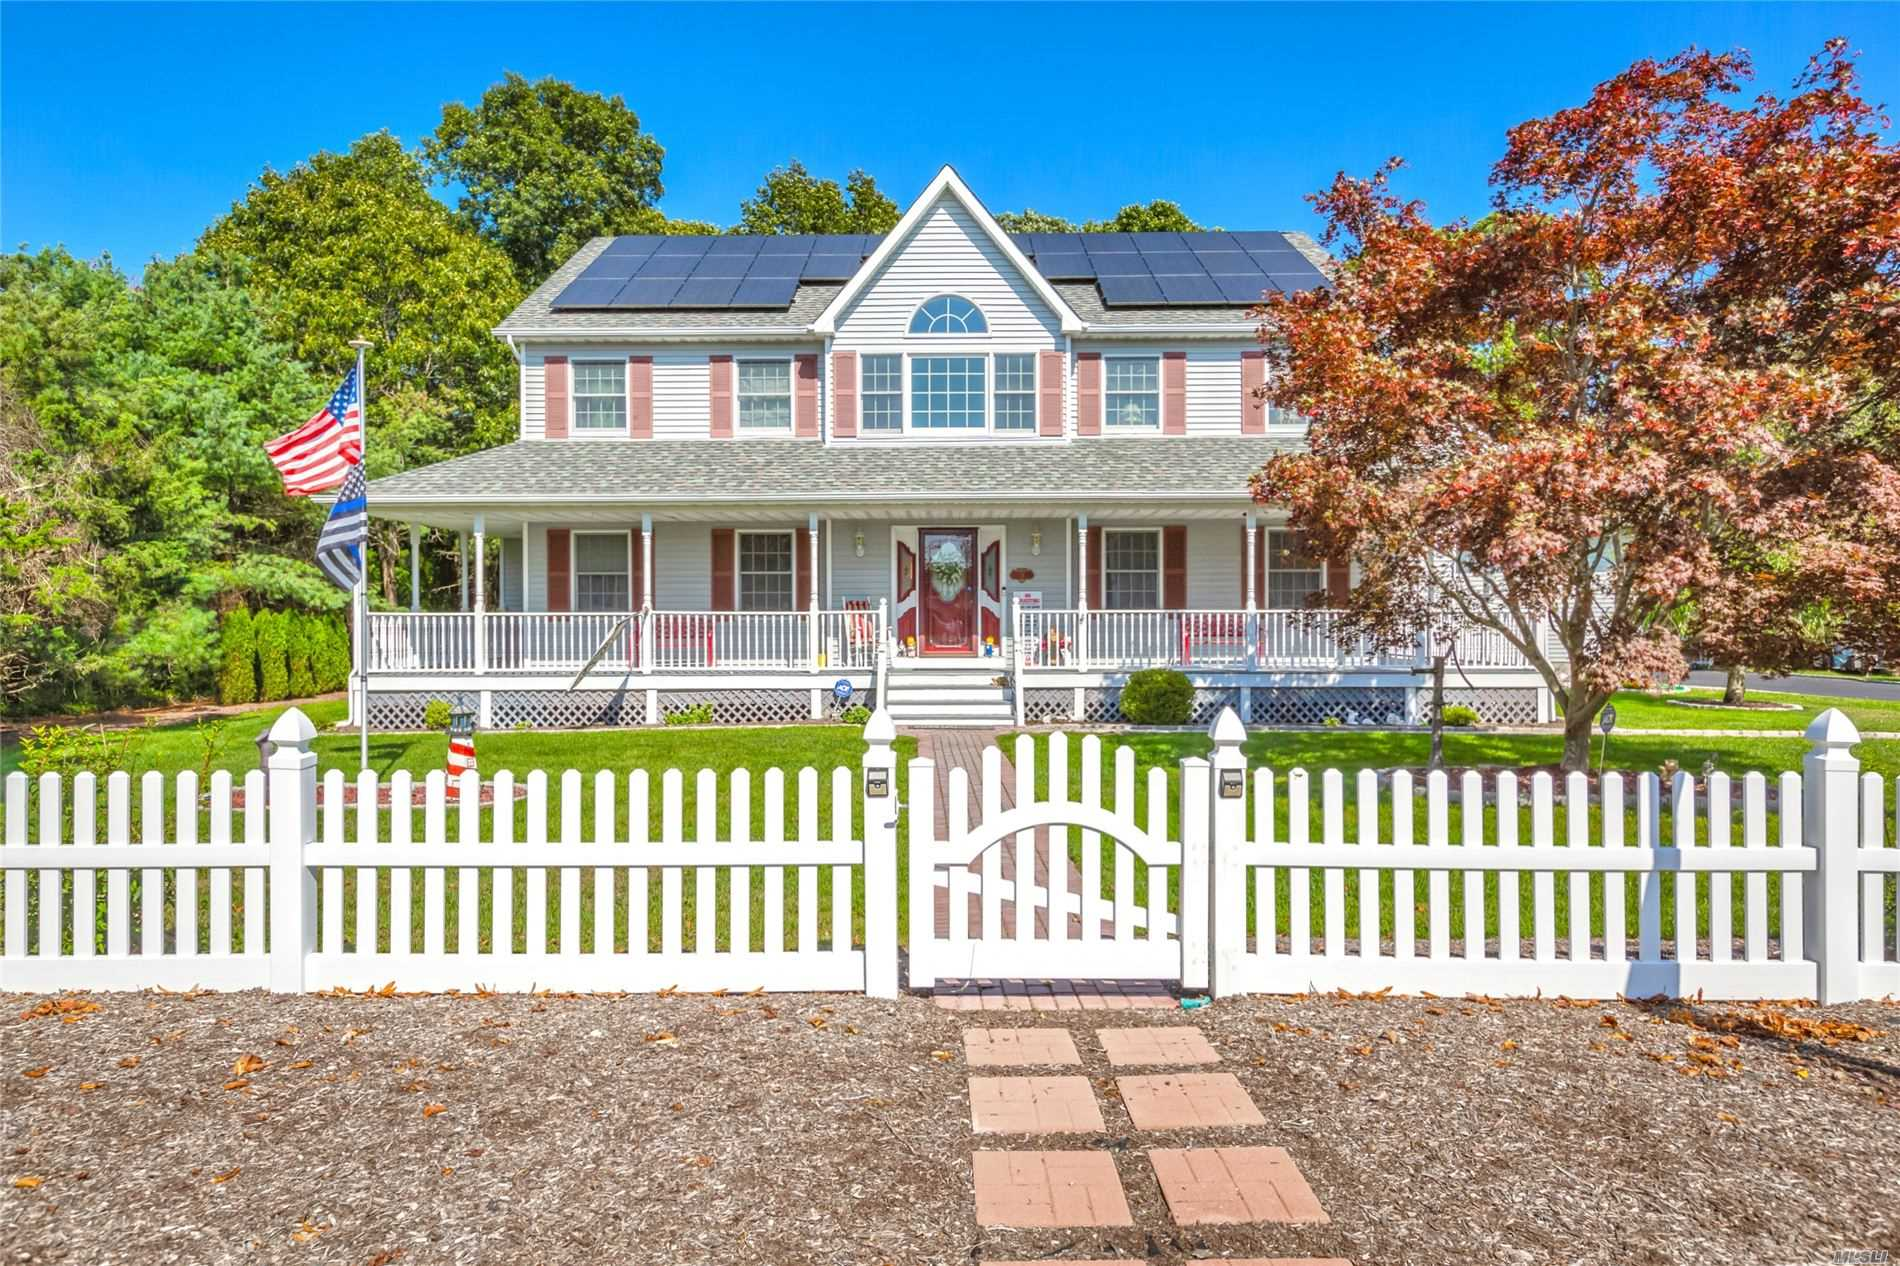 21 Briana Ct - East Moriches, New York